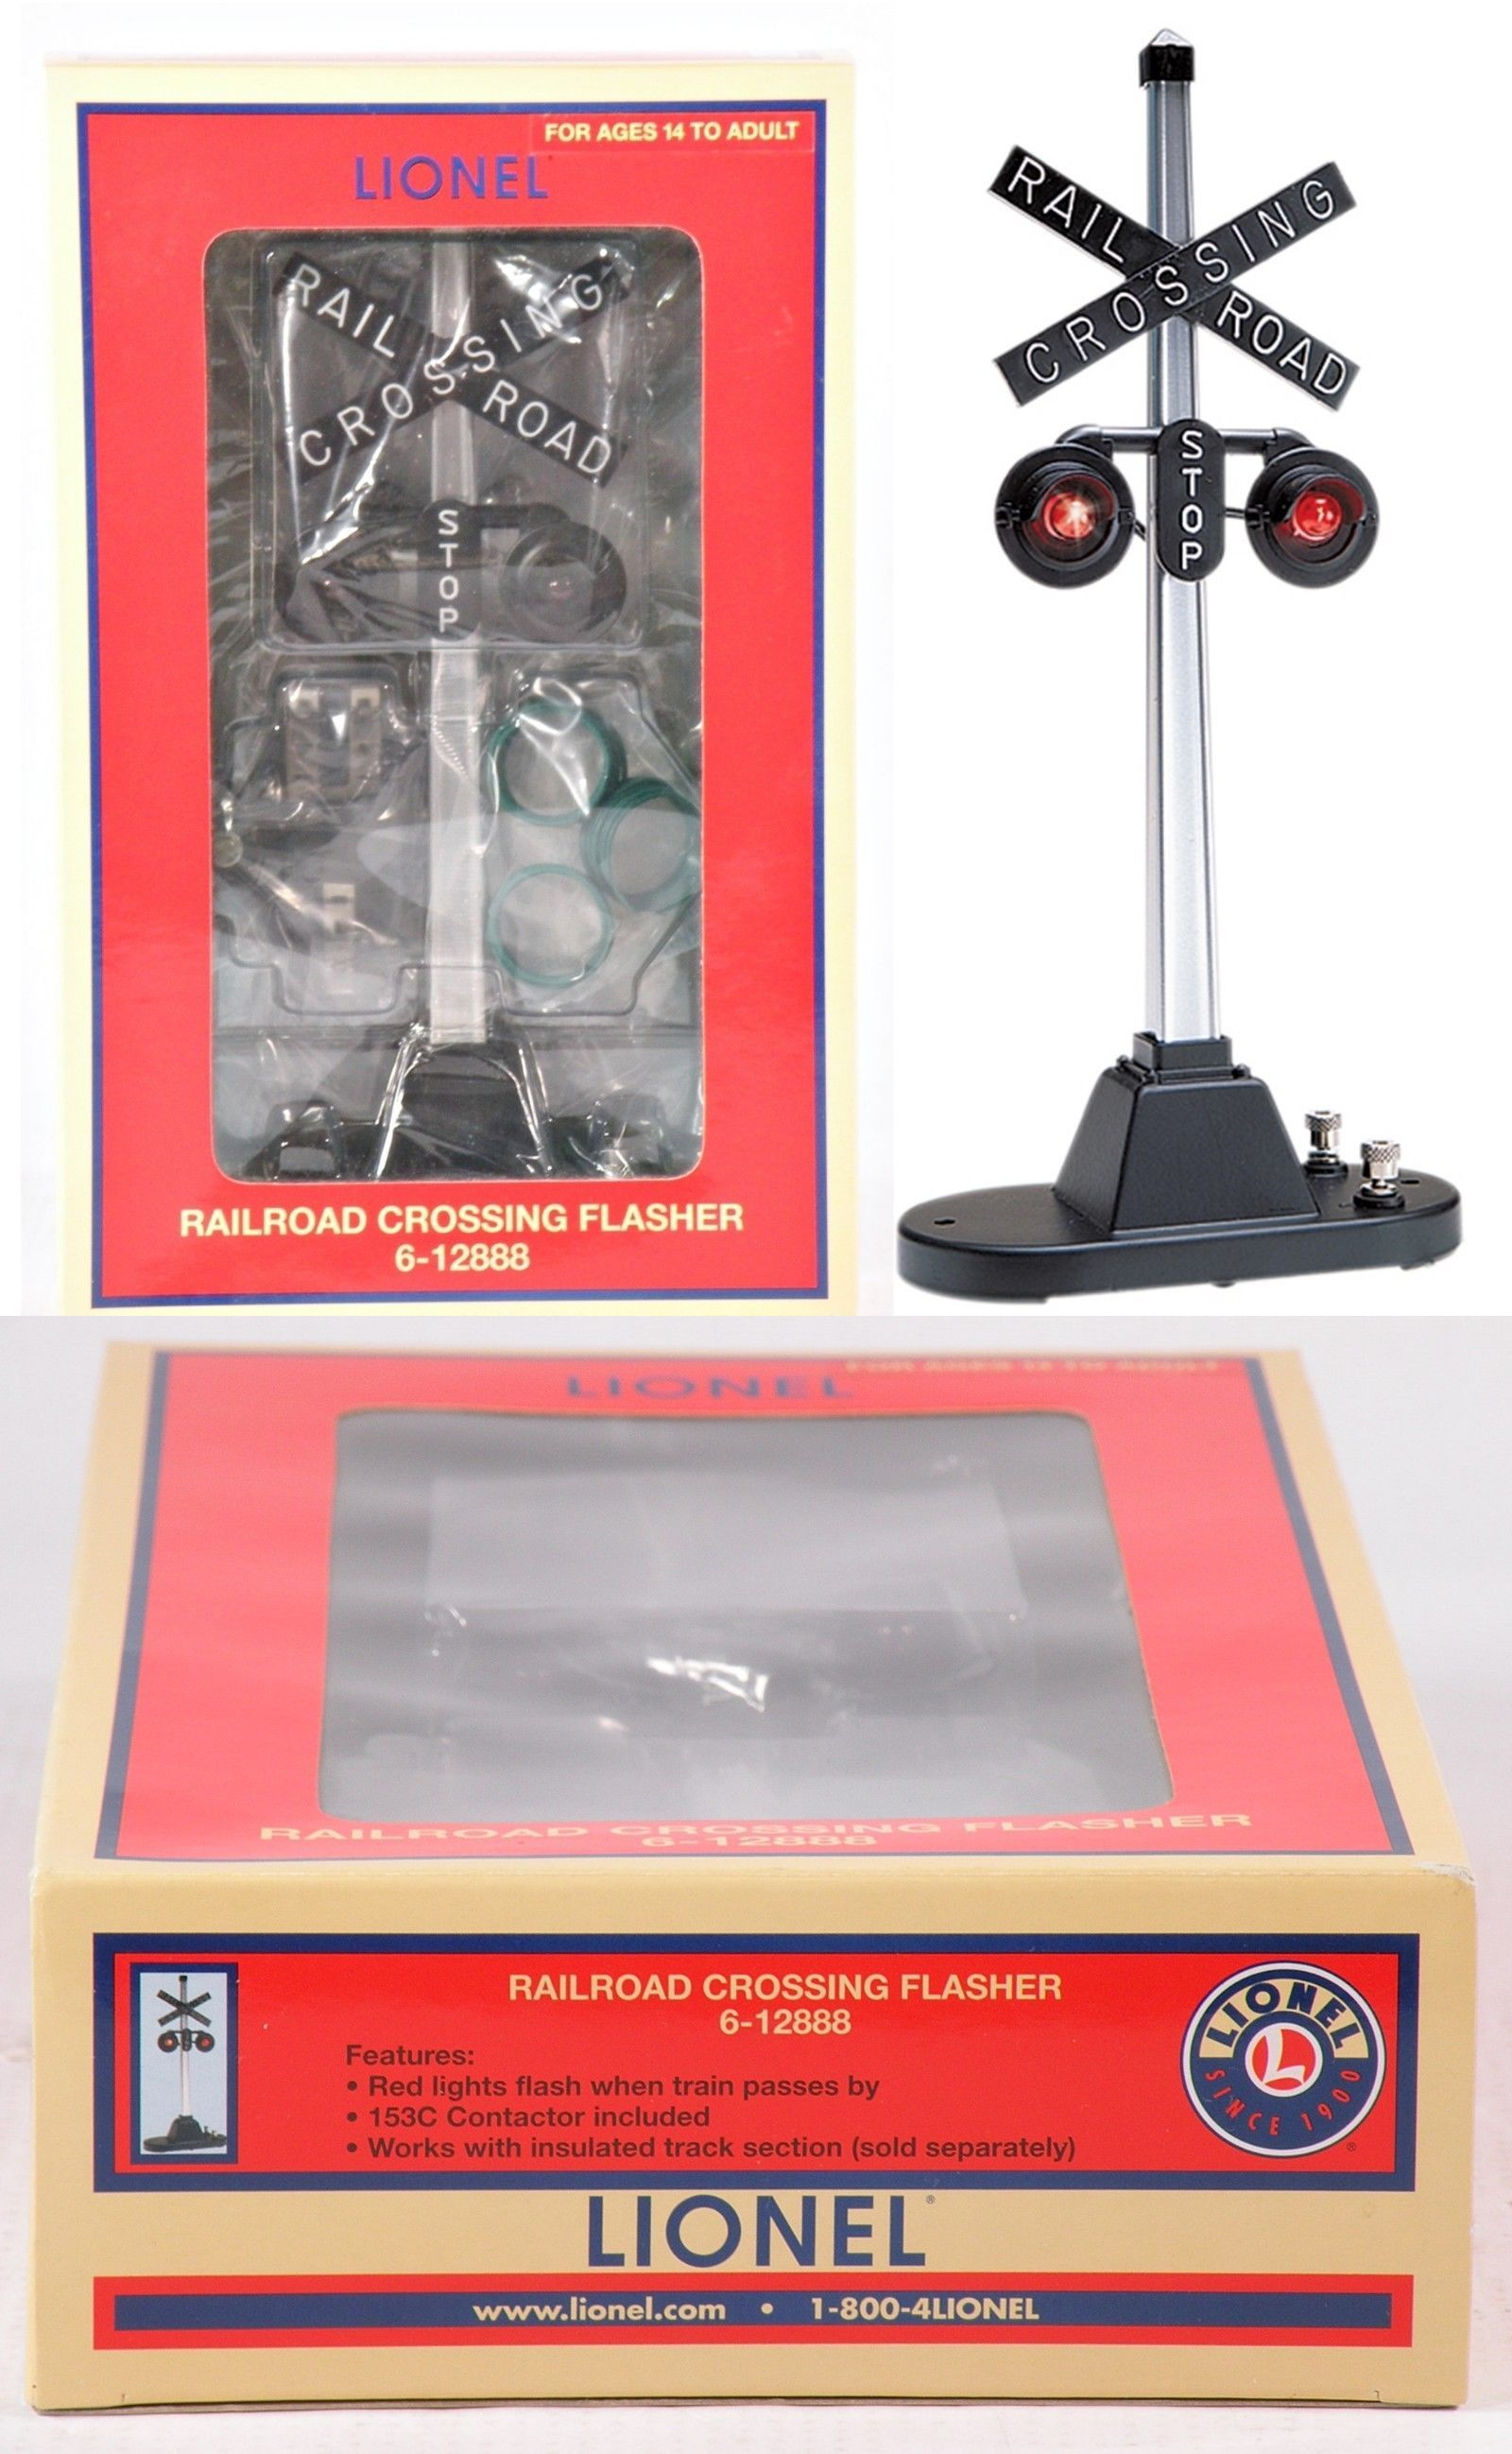 small resolution of signals 81051 lionel 6 12888 railroad crossing flasher 154 c9 buy it now only 51 on ebay signals lionel railroad crossing flasher